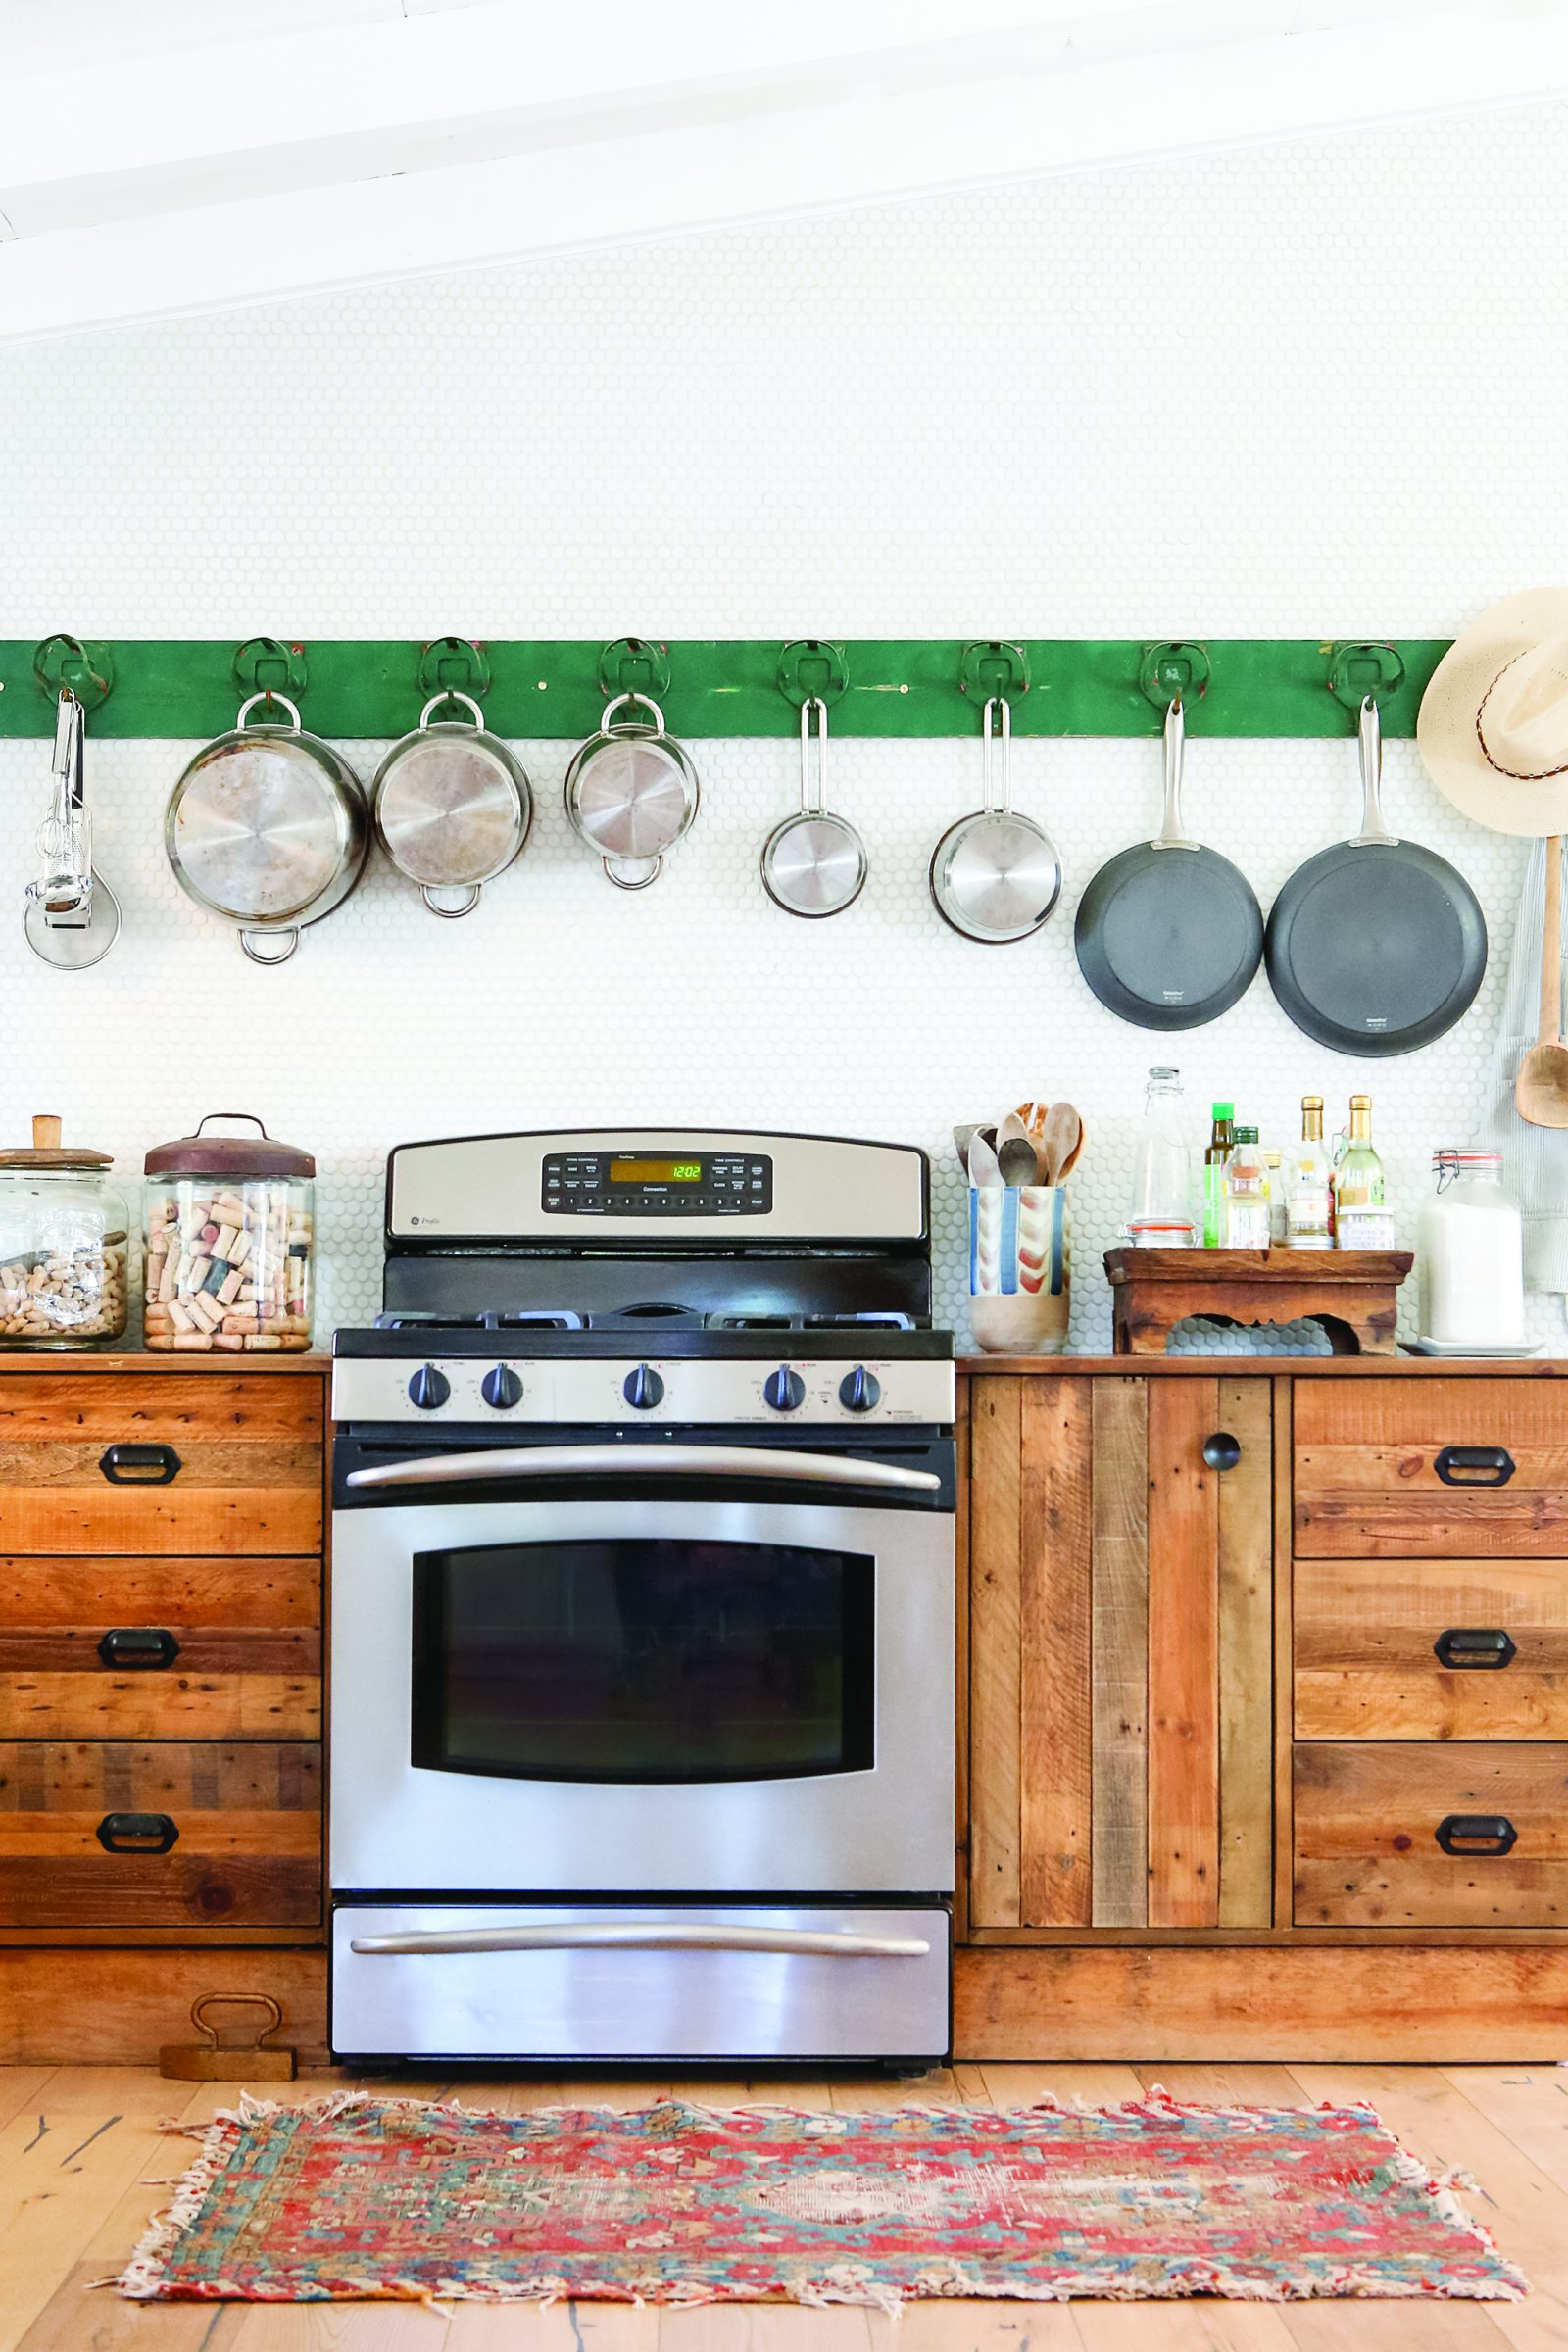 Why Buy American-made Appliances? - American Farmhouse Lifestyle